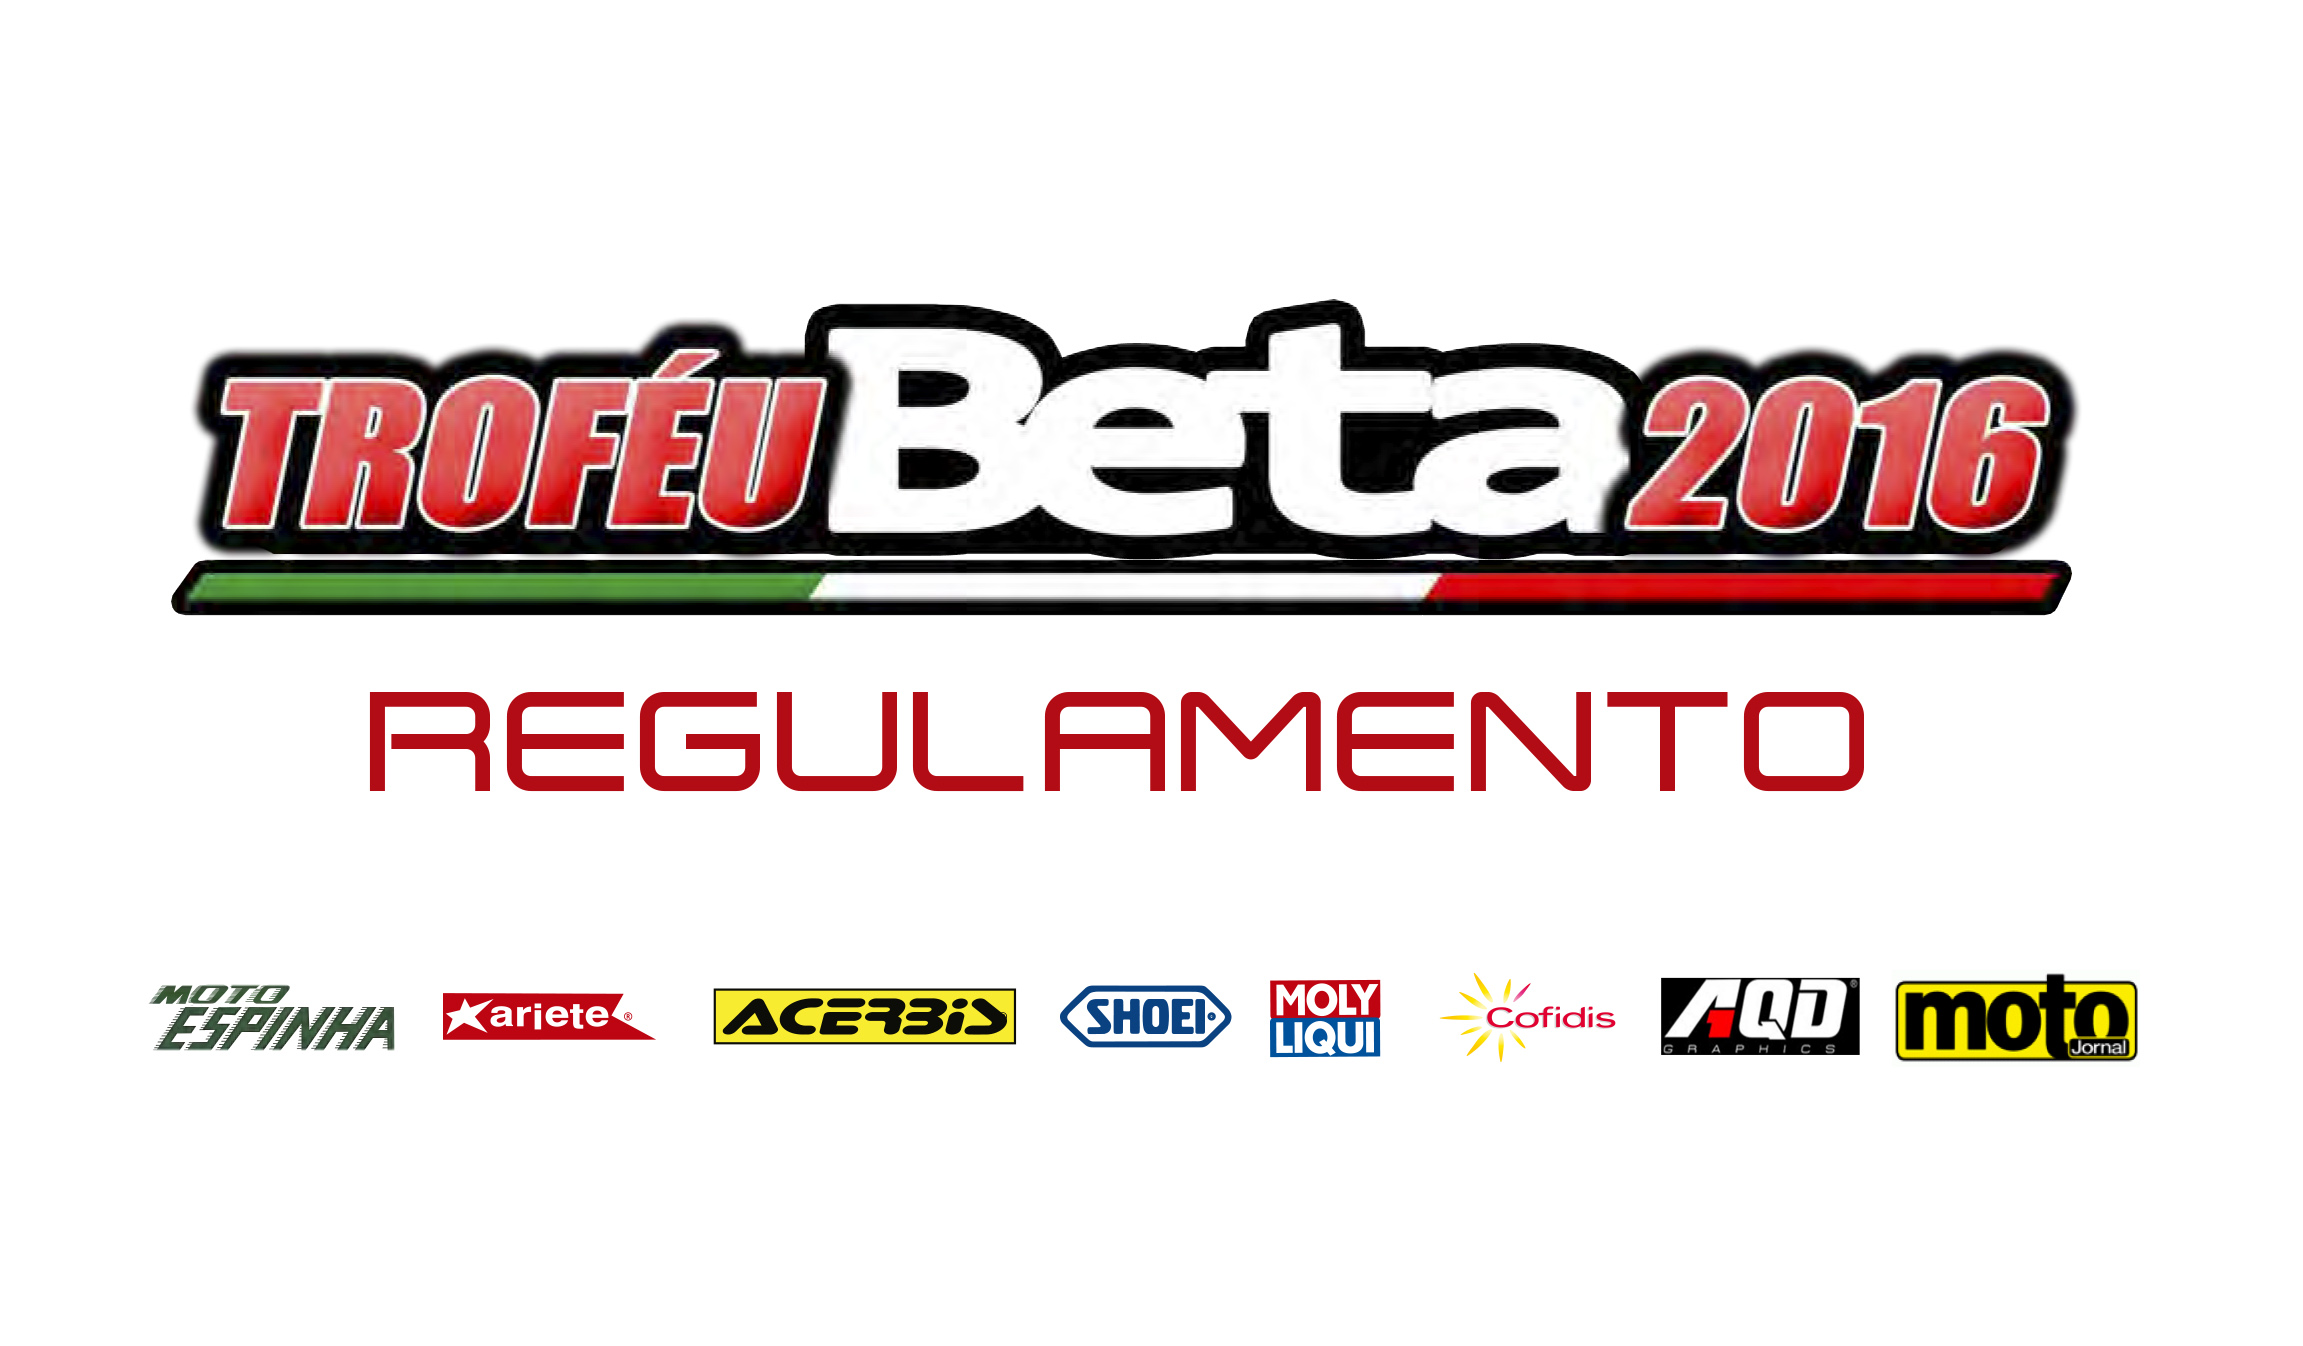 REGULAMENTO trofeu beta 2016 frente.jpg